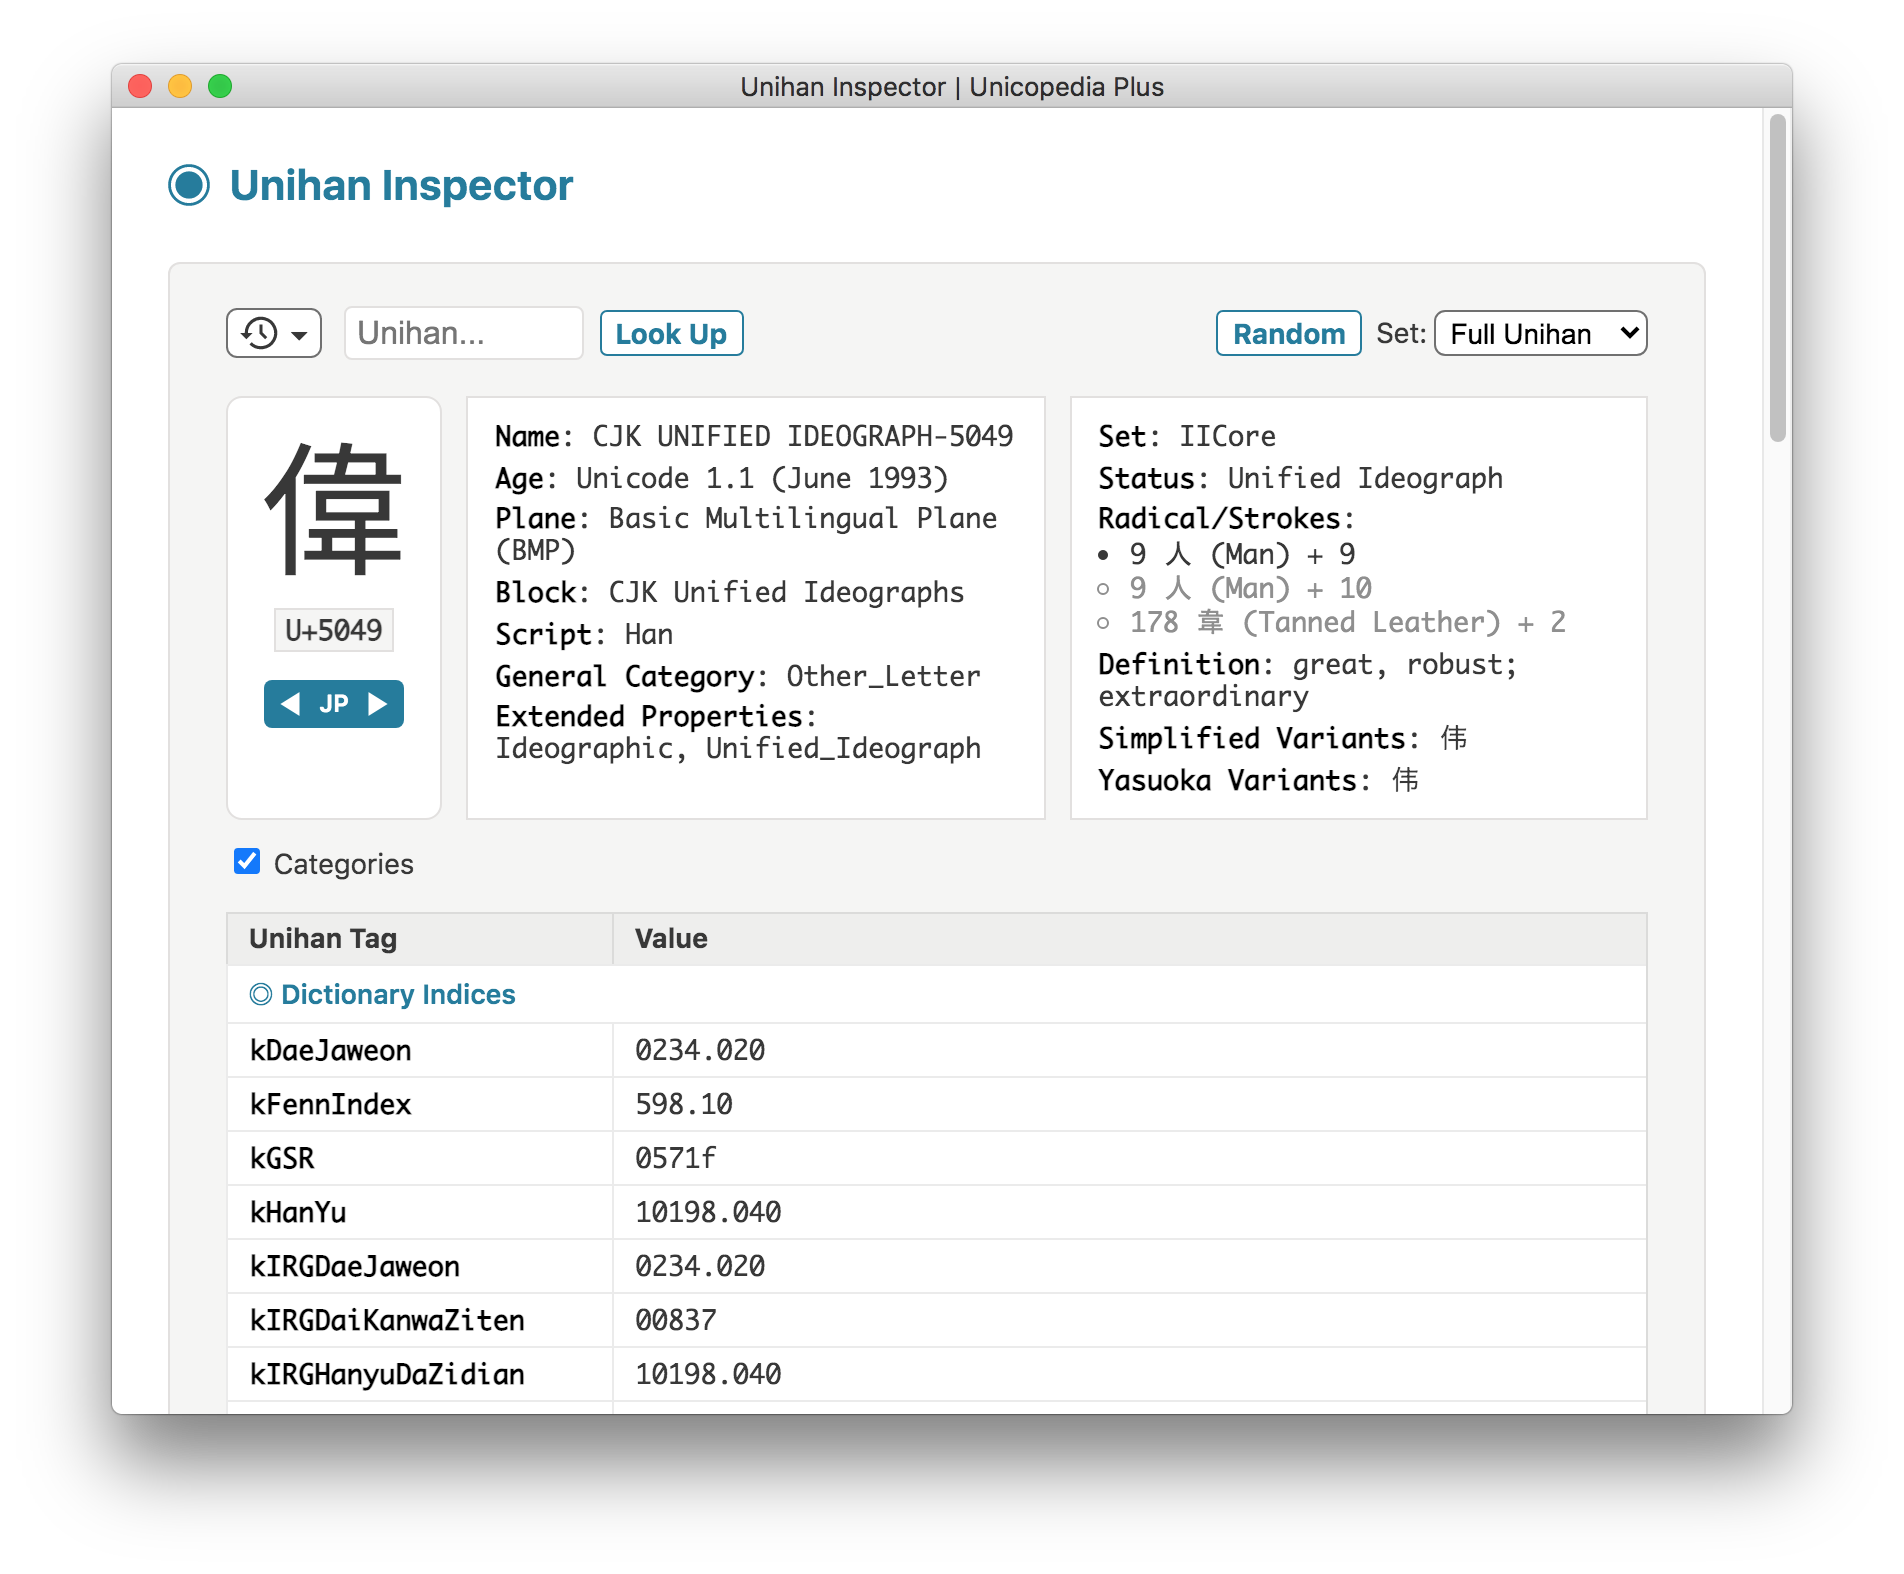 Unihan Inspector screenshot